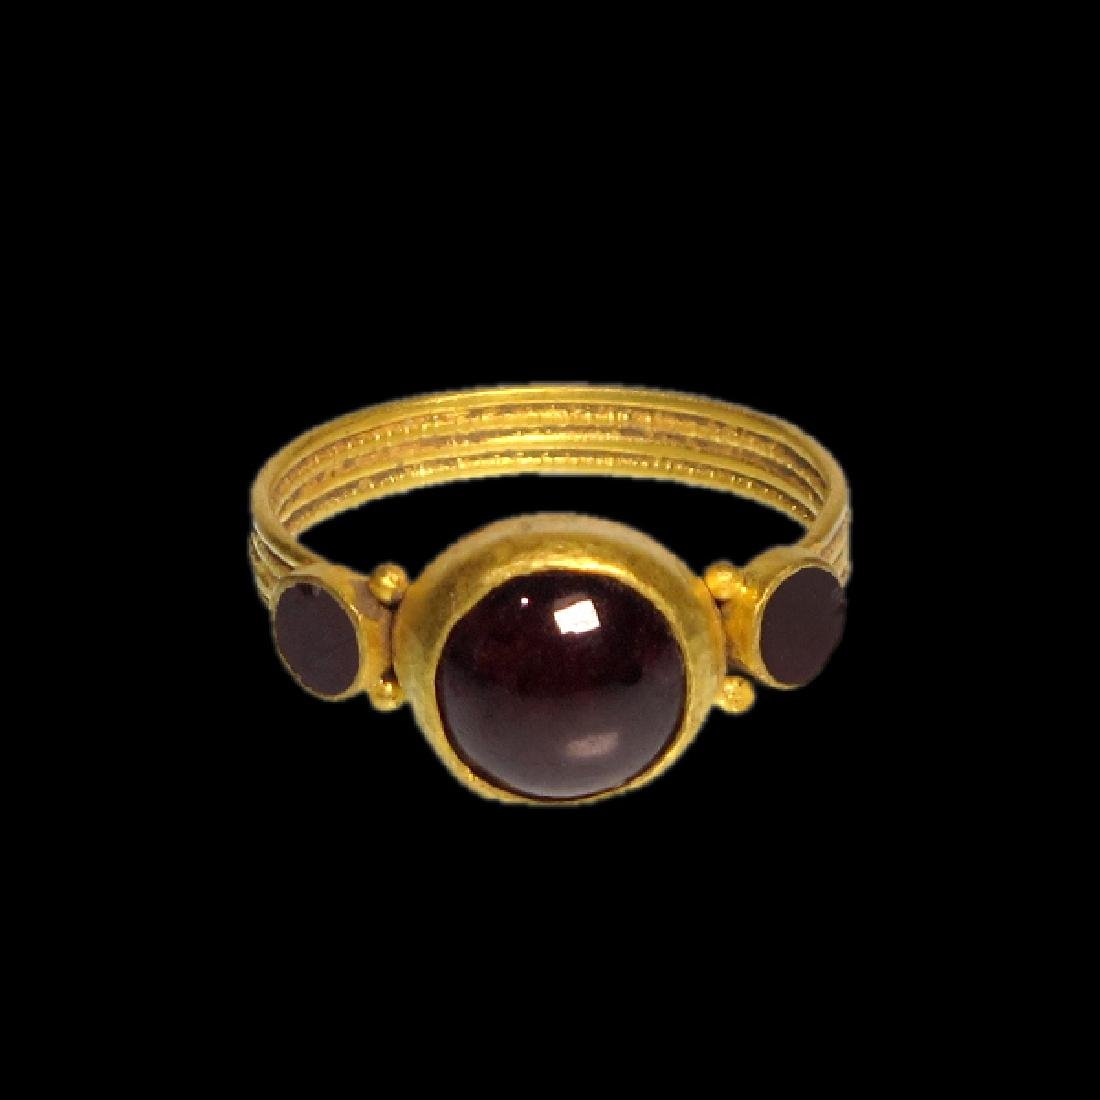 Merovingian Gold Ring with Garnets